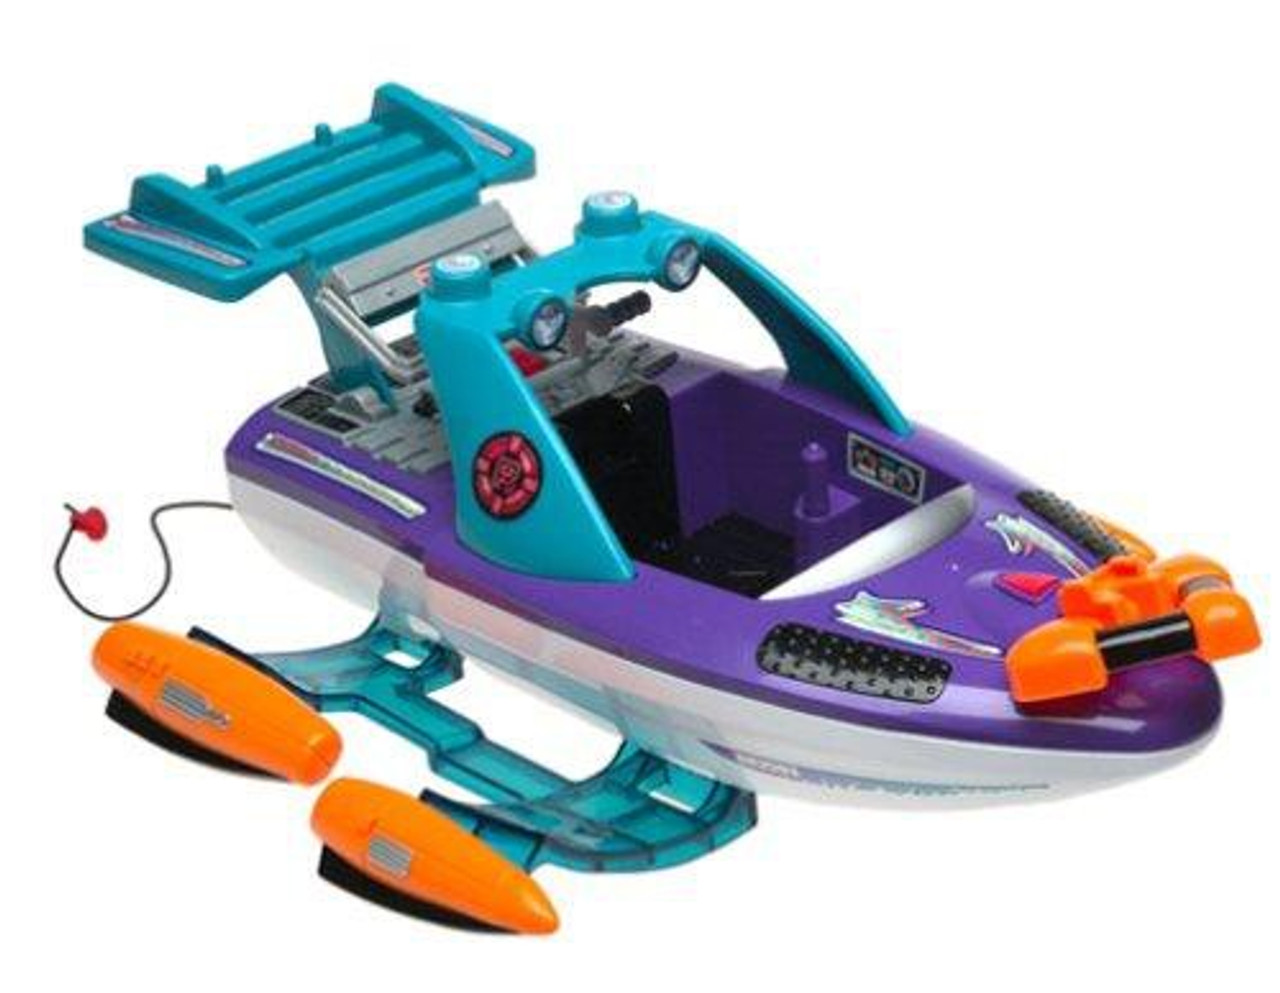 Fisher Price Rescue Heroes Quick Response Hydrofoil Toy Vehicle